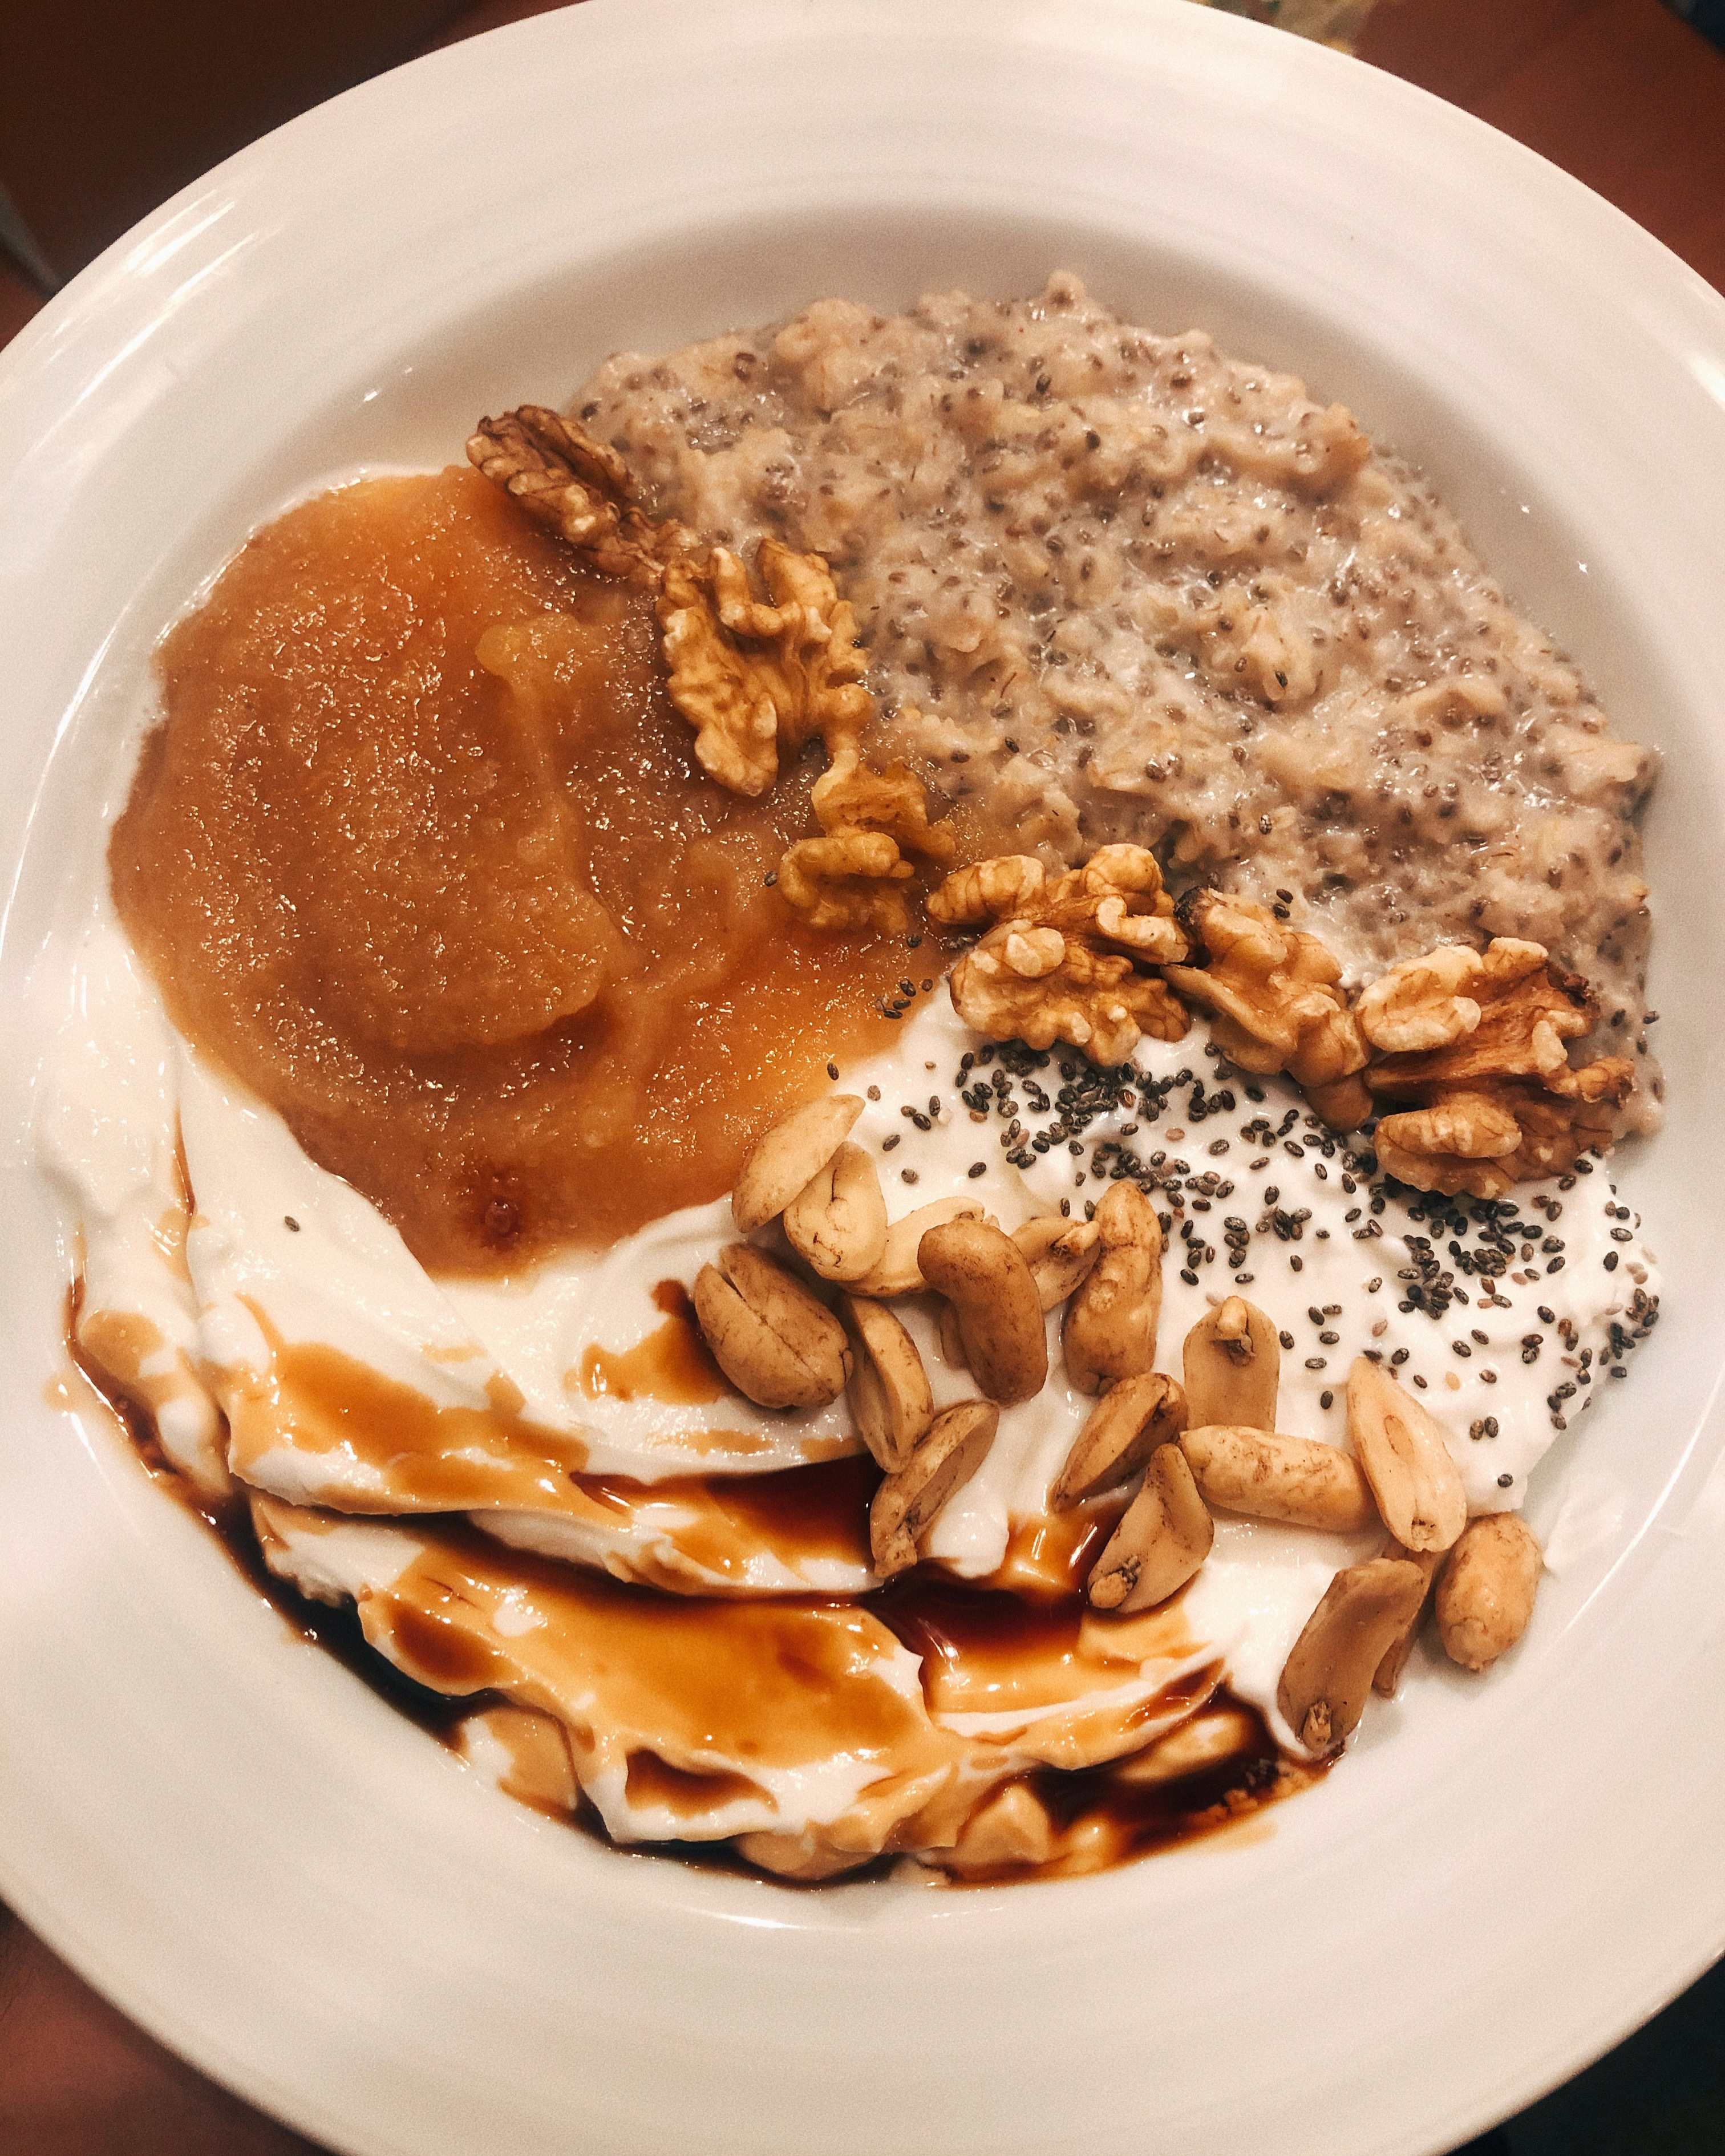 An overhead photo shows a white bowl containing oatmeal, apple sauce, yogurt, along with nuts and other toppings.